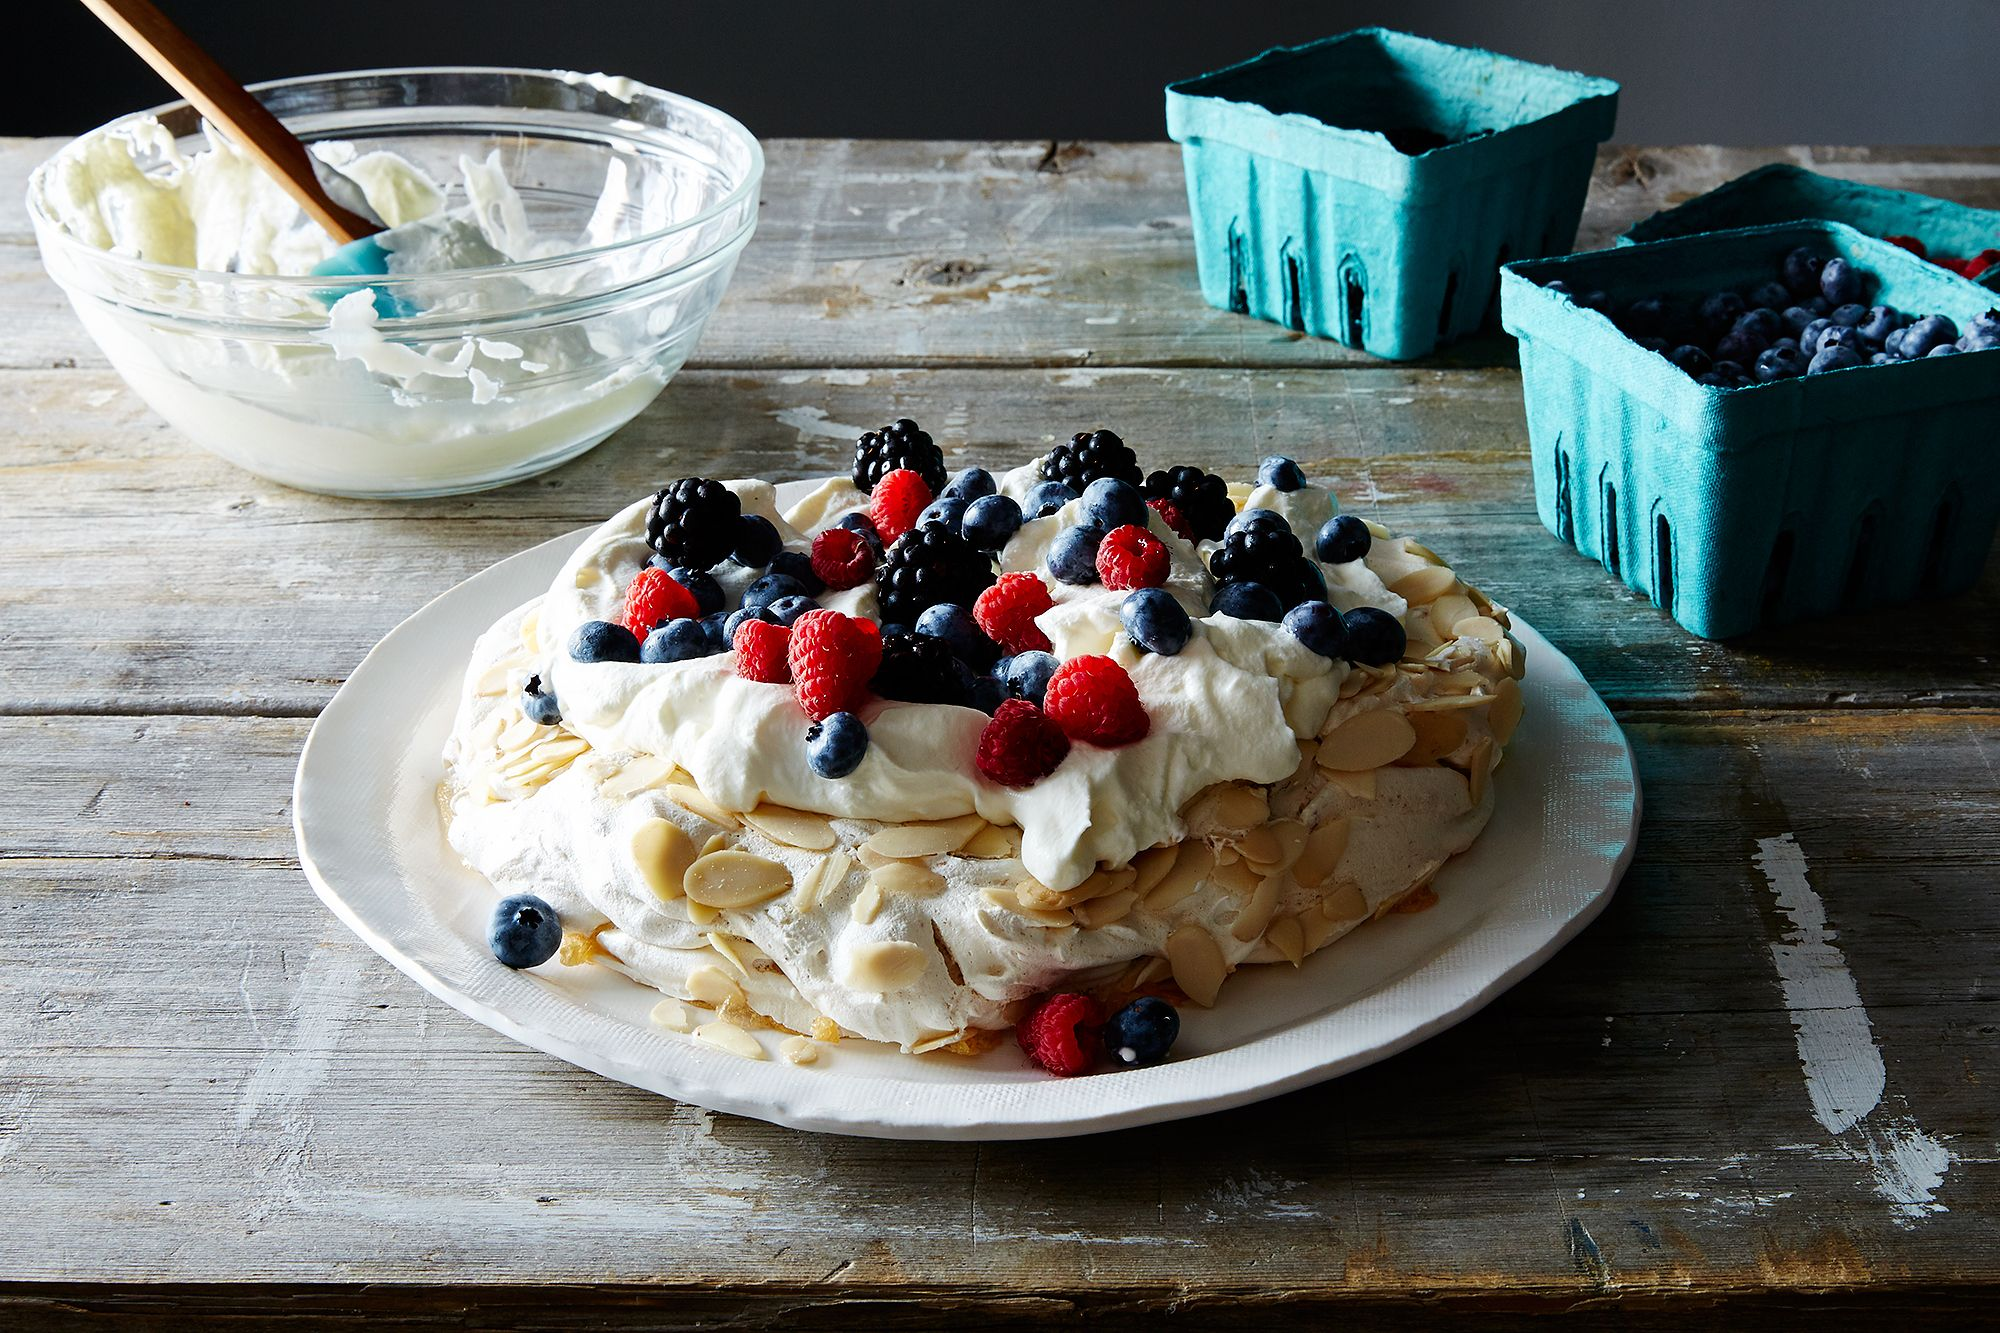 Crunchy Almond Butter Meringue with Berries and Cream Recipe